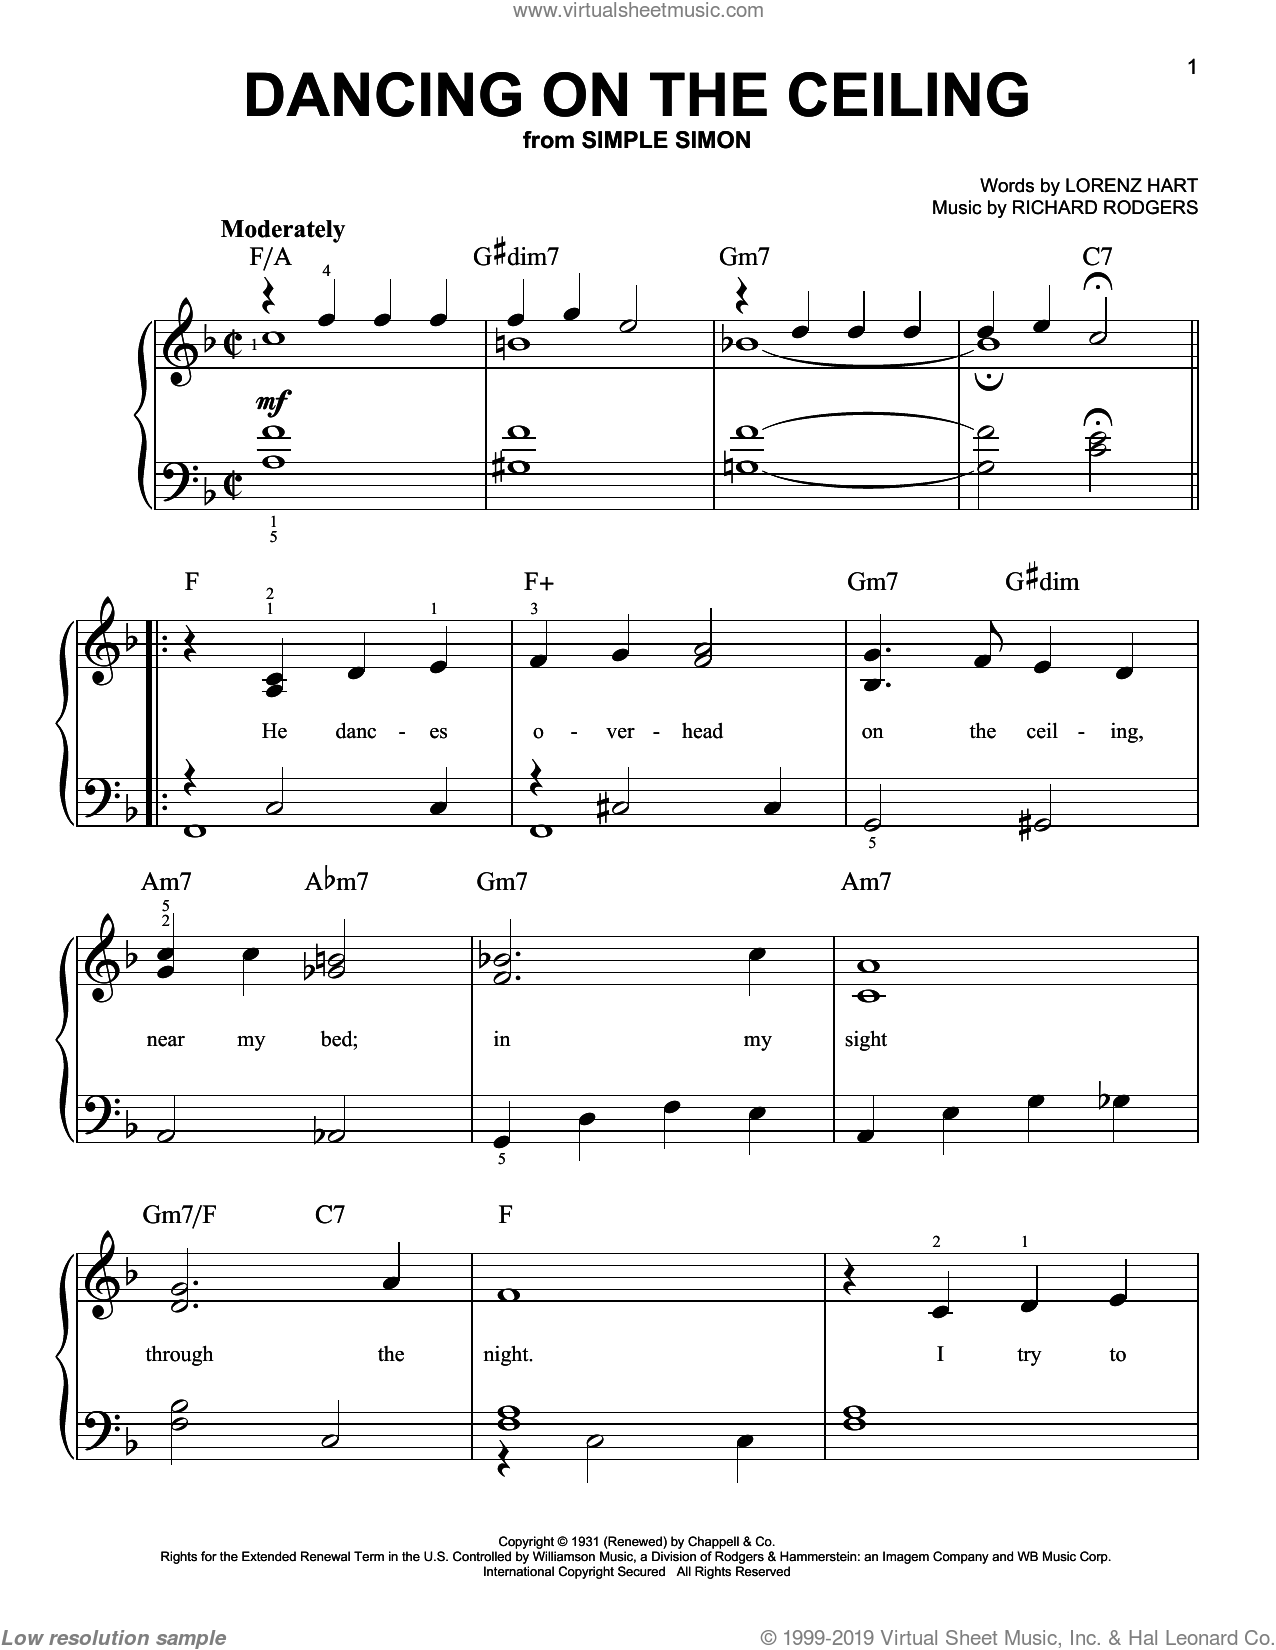 Dancing On The Ceiling sheet music for piano solo (chords) by Richard Rodgers